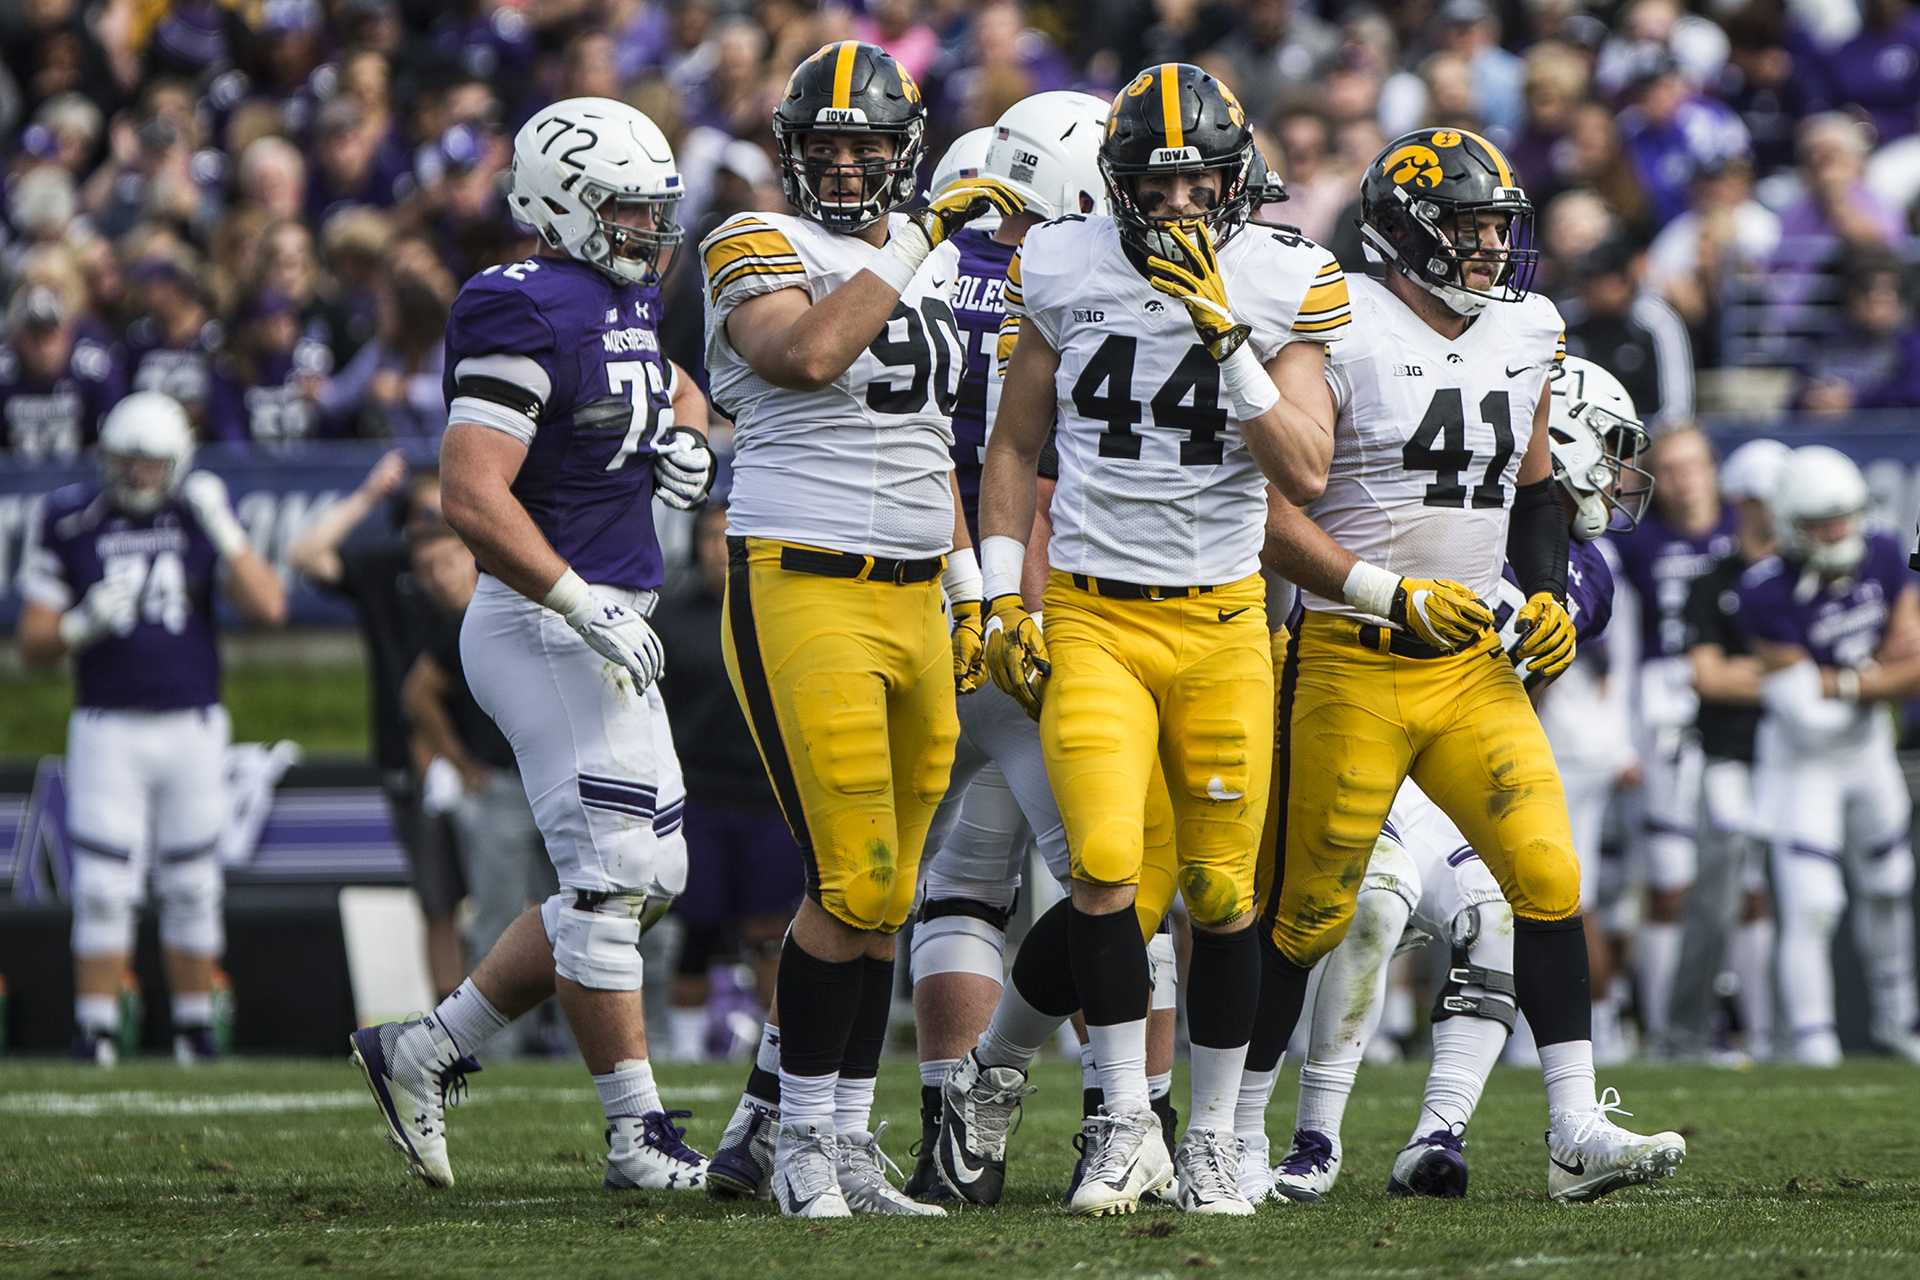 Iowa's Sam Brincks (90), Ben Niemann (44), and Bo Bower (41) walk off the field during the game between Iowa and Northwestern at Ryan Field in Evanston, Ill. on Saturday, Oct. 21, 2017. The Wildcats defeated the Hawkeyes 17-10 in overtime. (Ben Smith/The Daily Iowan)